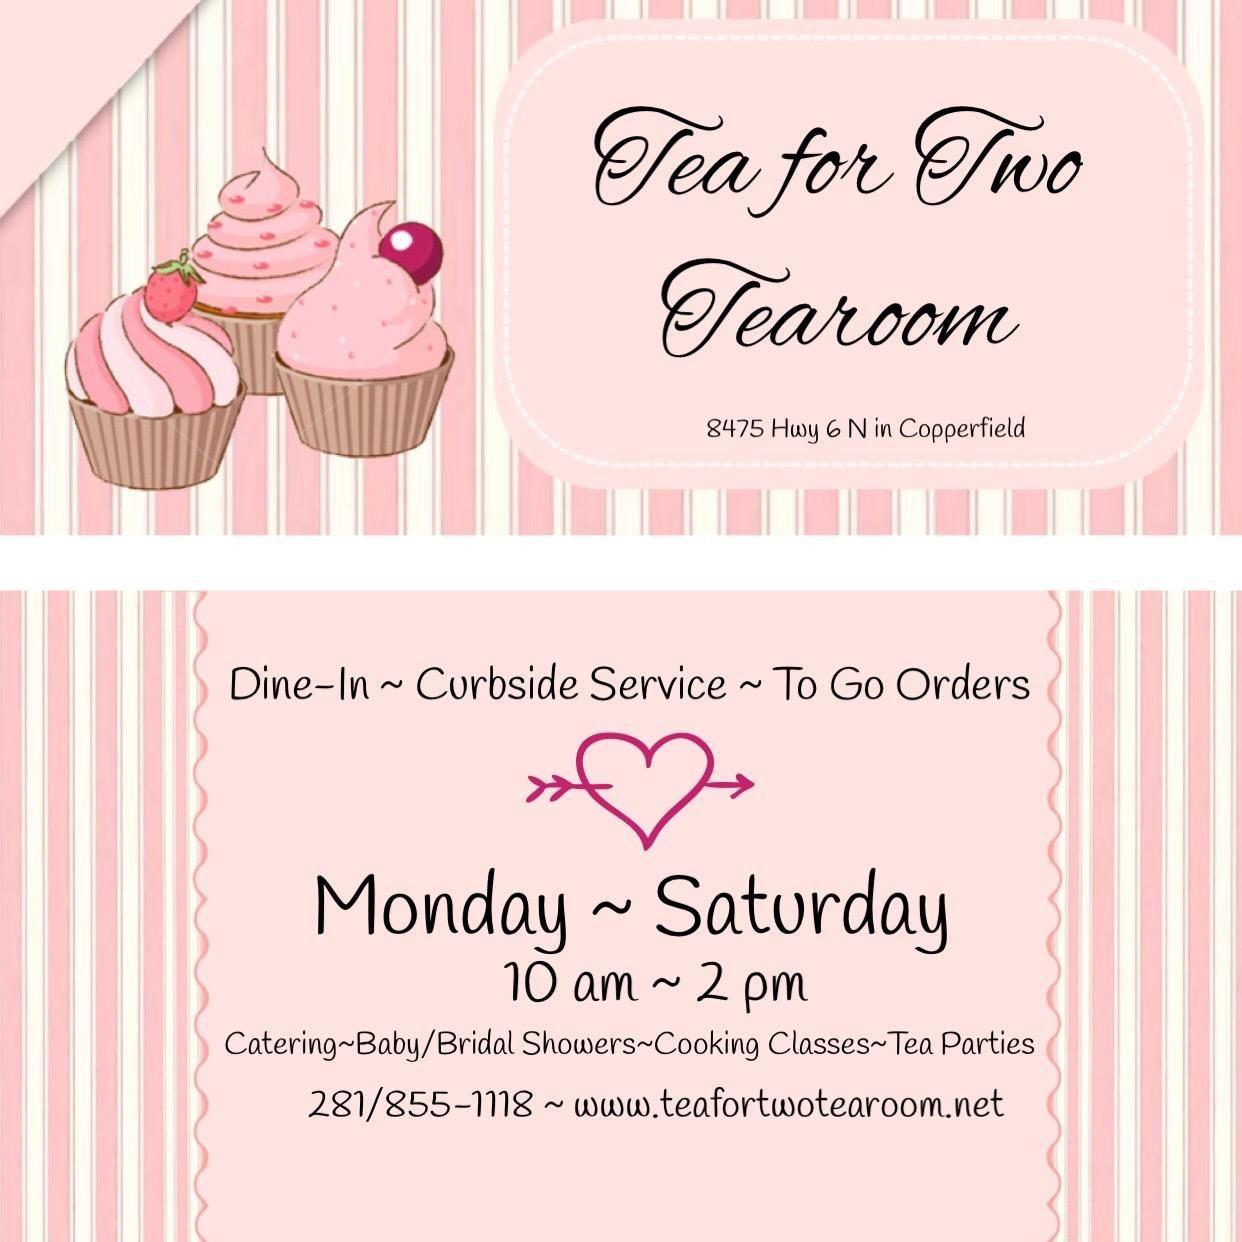 tea for two tearoom. 8475 Hwy 6 in Copperfield. Dine-In ~ Curbside Service ~ To Go Orders. Monday ~ Saturday 10am~2pm. Catering, baby/bridal showers, cooking classes, tea parties. 281-855-1118. www.teafortwotearoom.net